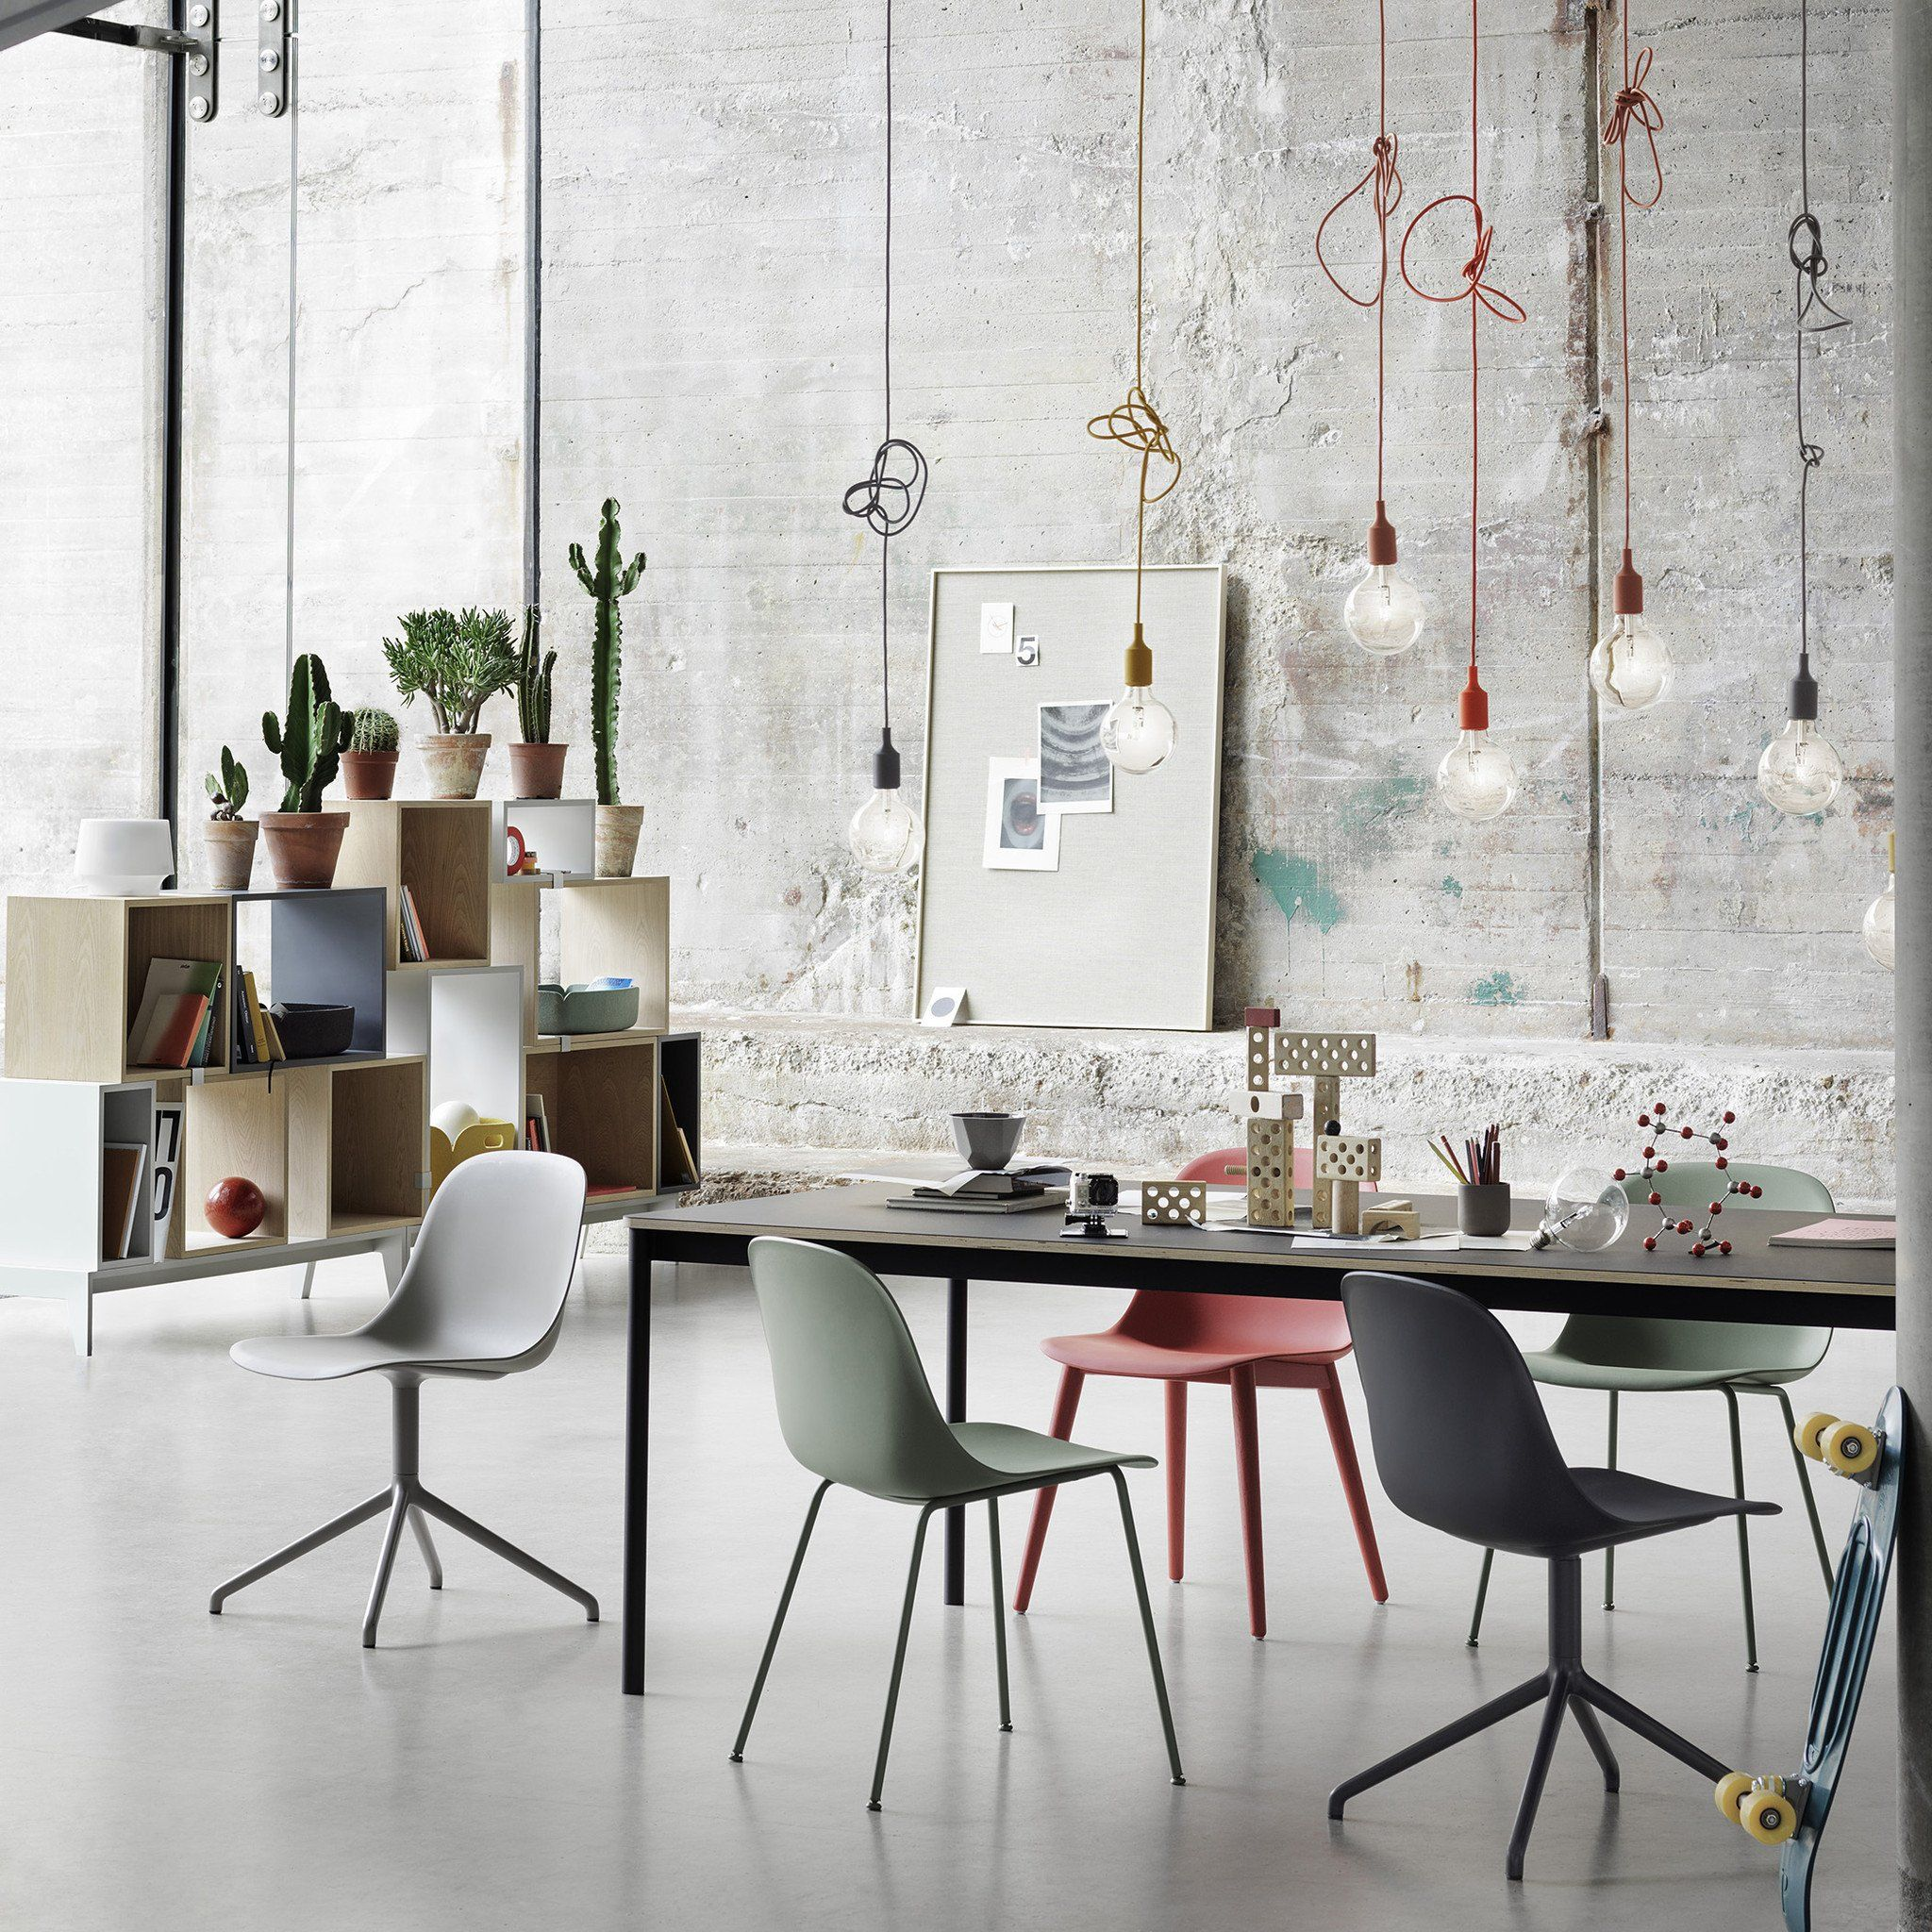 Modern Industrial Style Combines Aesthetics With: The E27 Pendant Lamp Designed By Mattias Stahlbom Is A